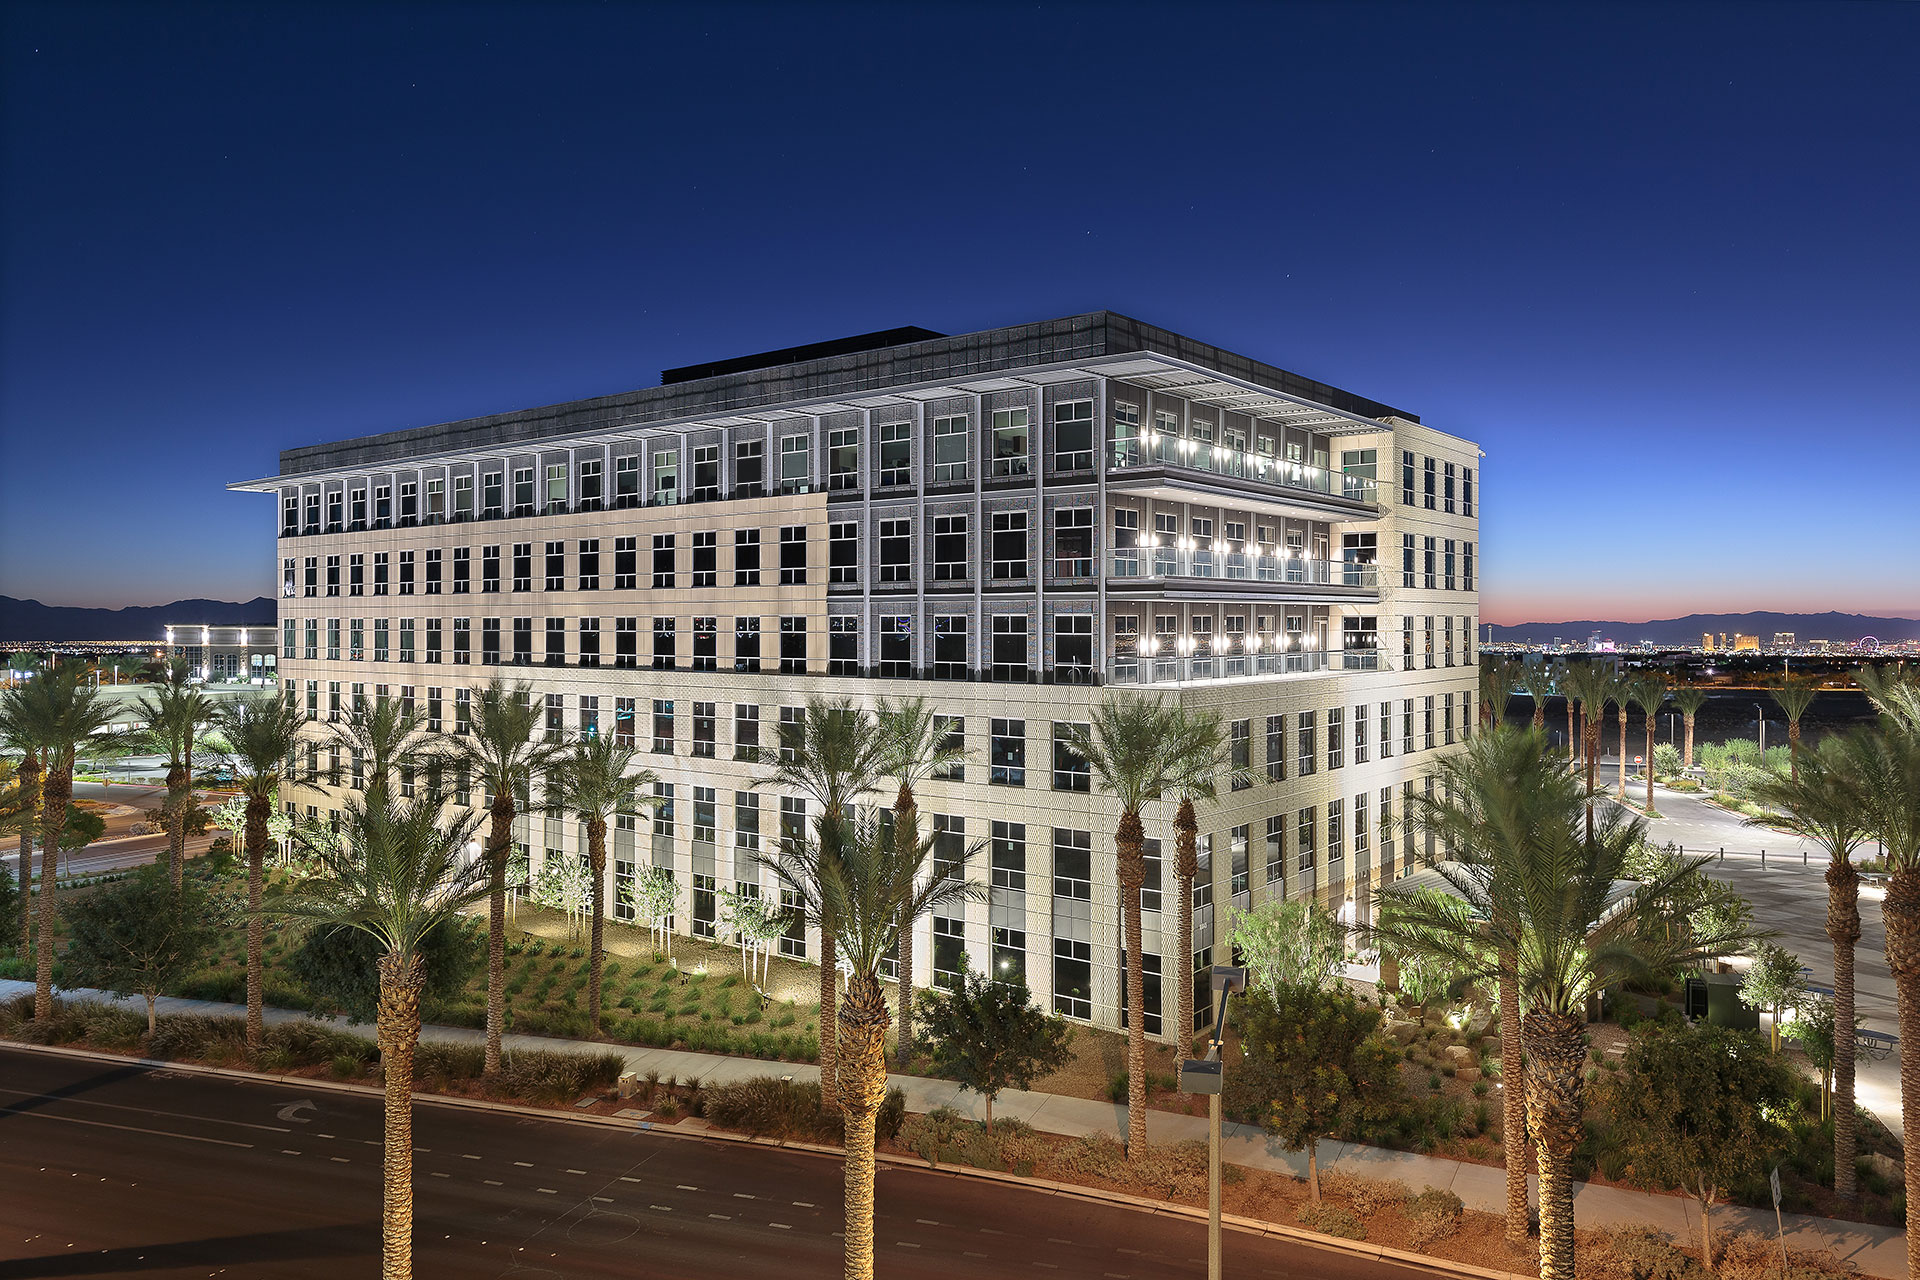 A six-story office building at twilight with beige and grey exterior, three glass balconies, with palm trees and desert lanscaping in the foreground with rich blue skies and the Las Vegas Strip in the background.